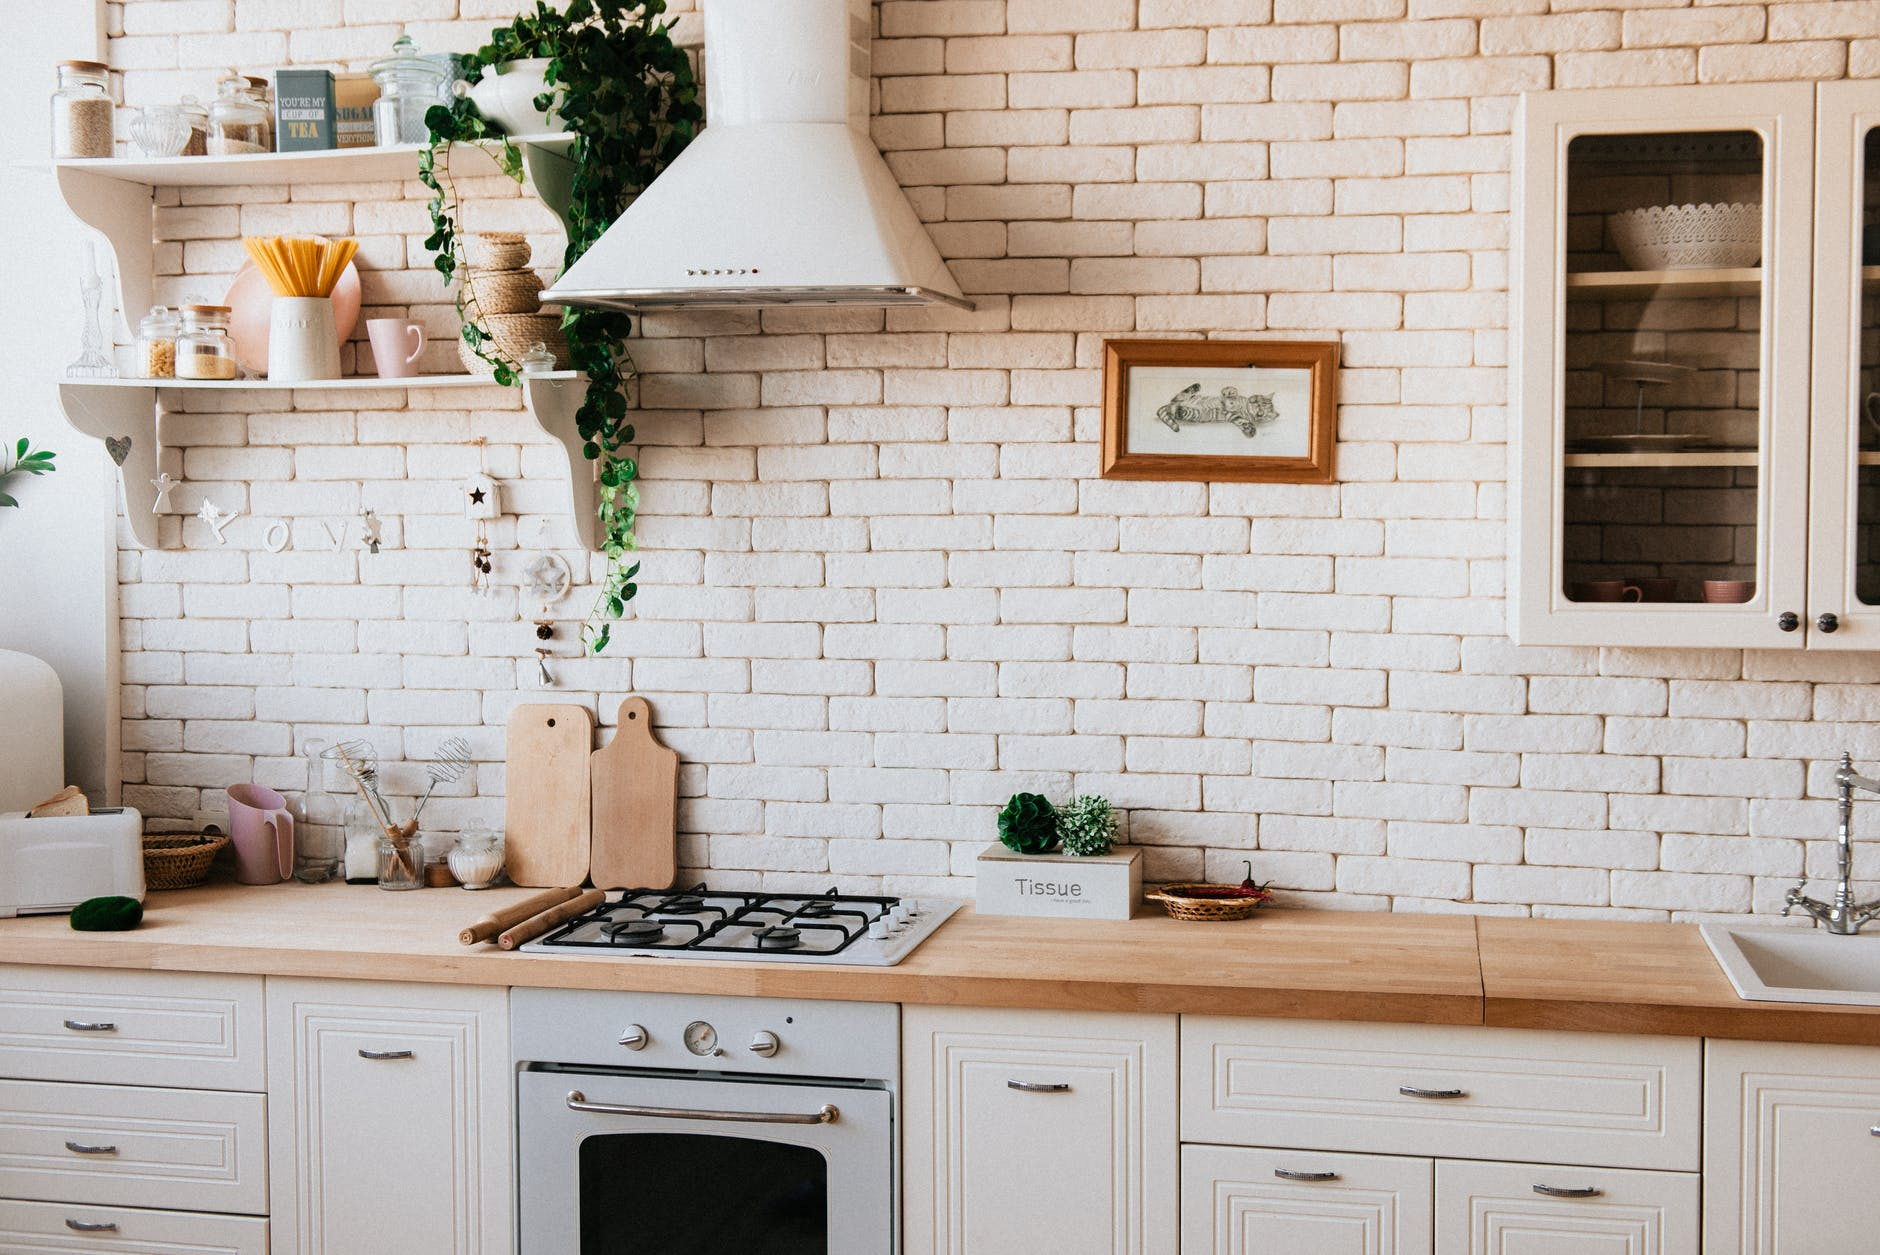 Summer Colour Trends for your Kitchen